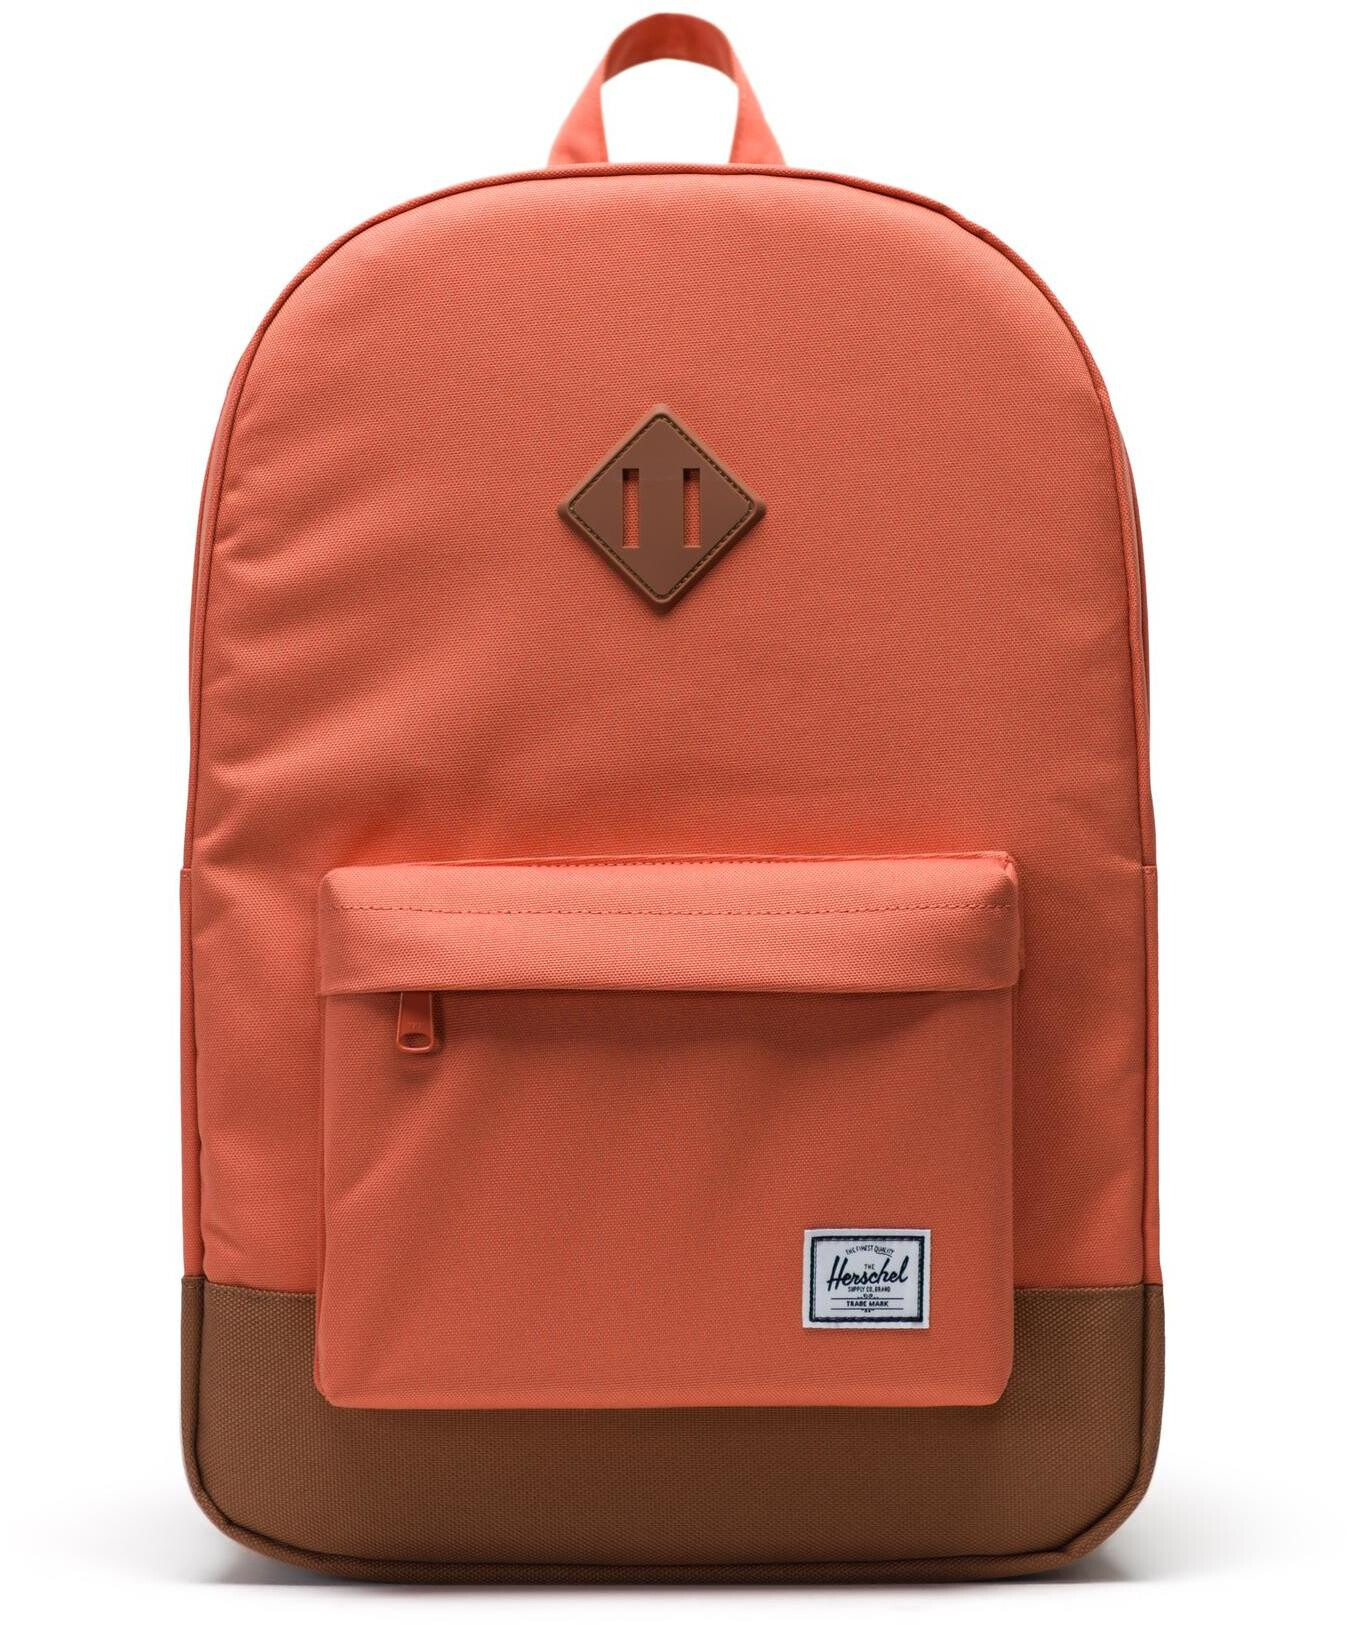 Herschel Heritage Rygsæk, apricot brandy/saddle brown (2019) | Travel bags